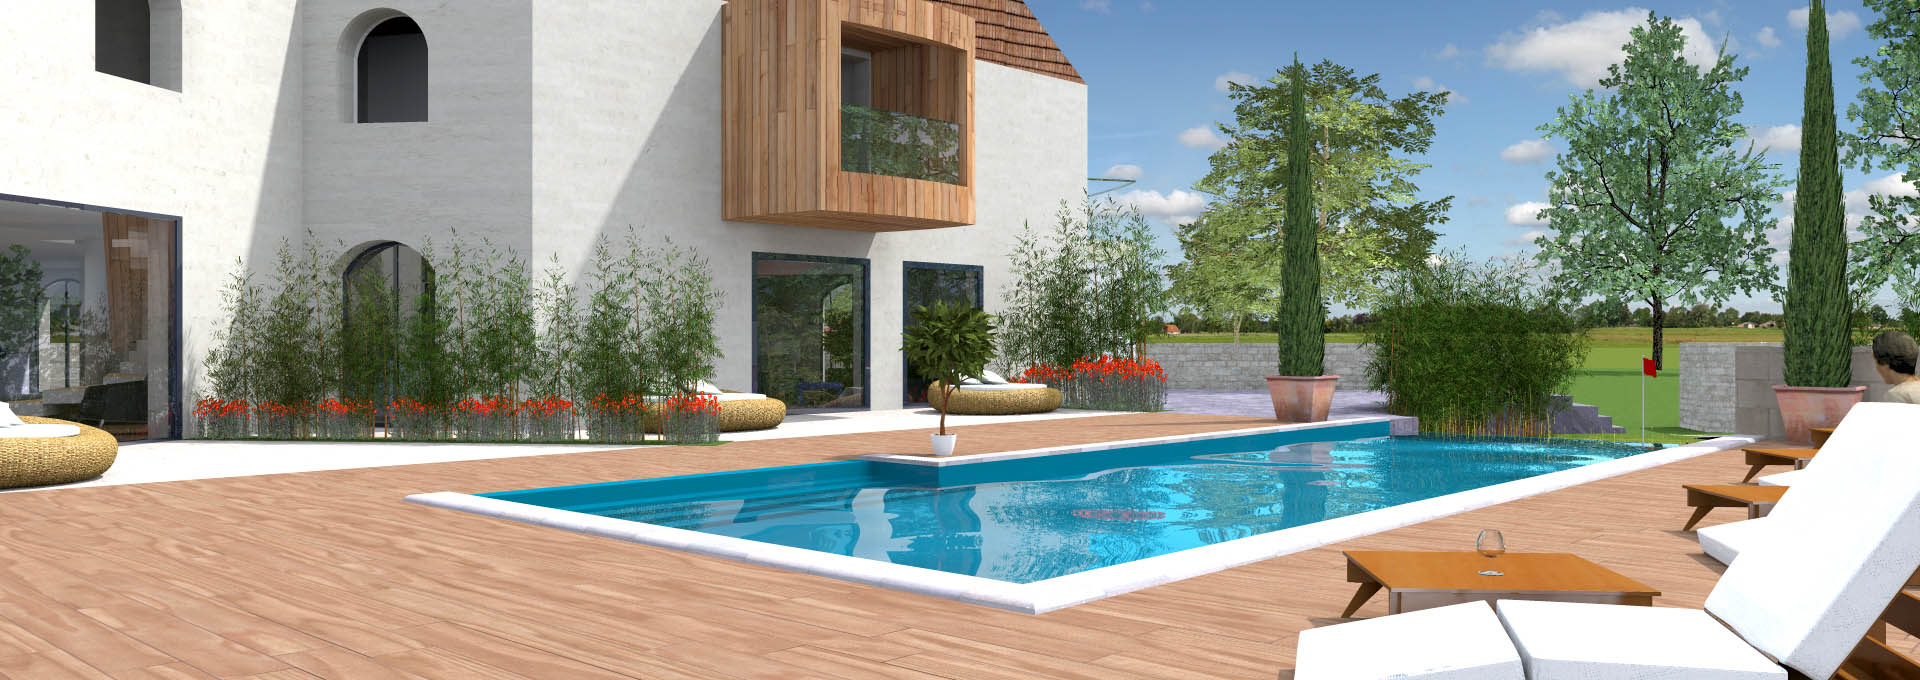 Amenagement piscine extrieure fabulous amnagement galets for Amenagement piscine terrasse